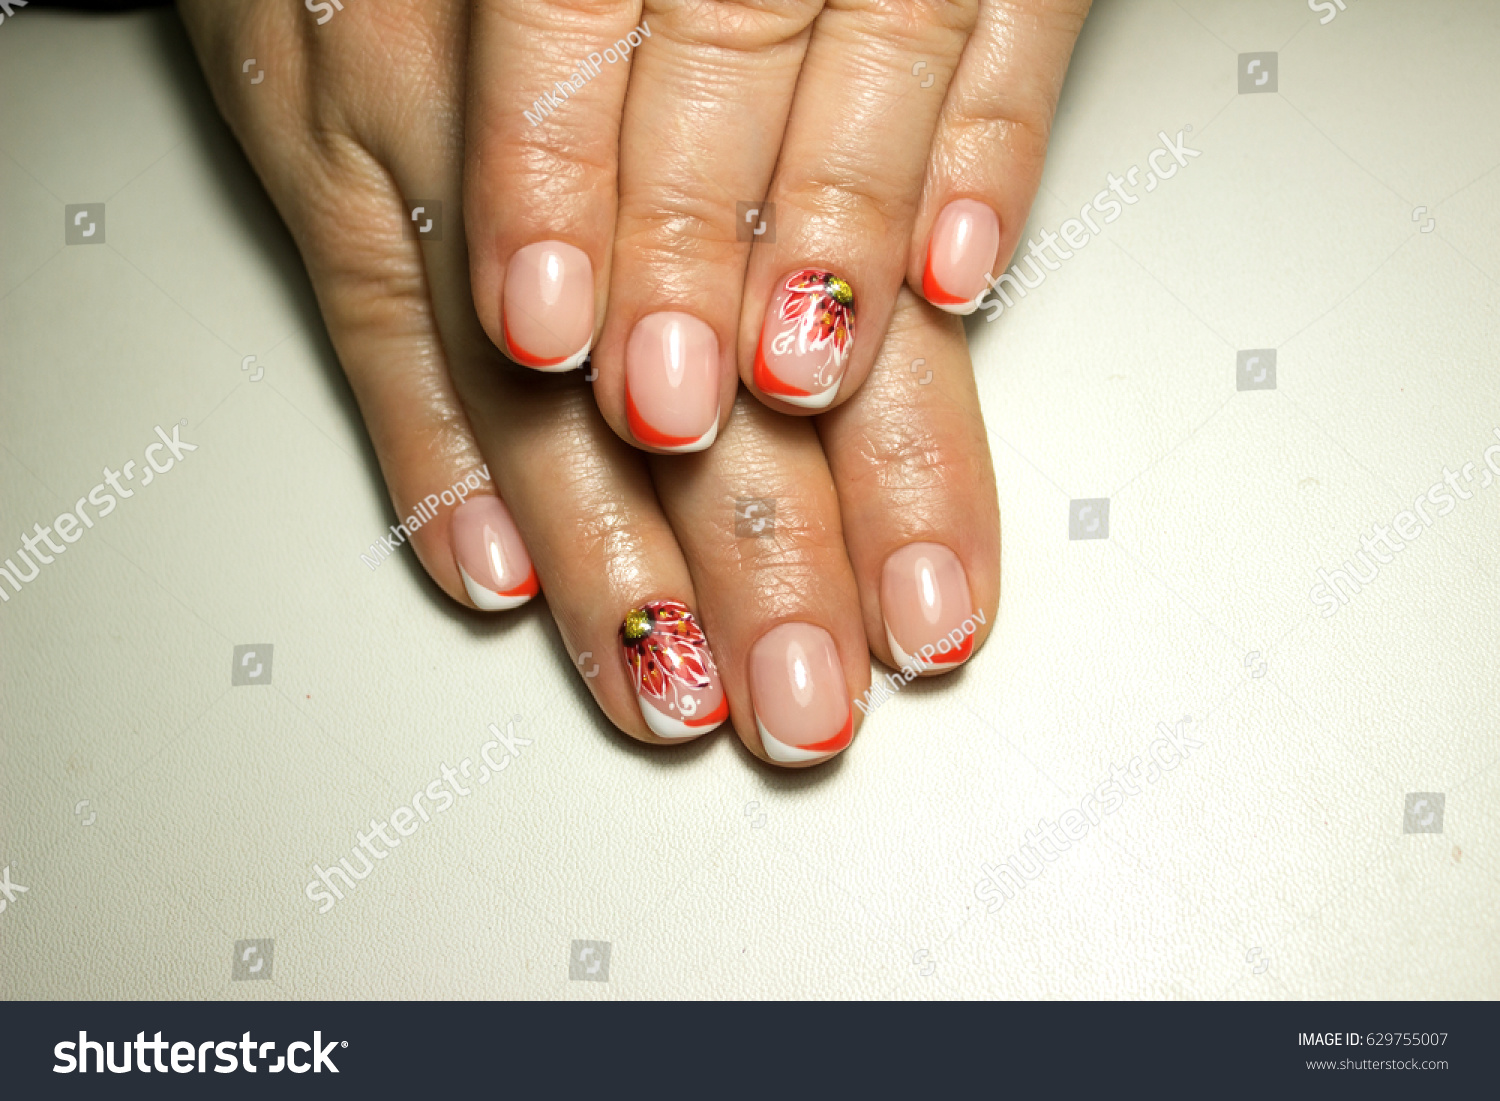 Beautiful nail design french manicure red stock photo 629755007 beautiful nail design french manicure with red flower and rhinestones prinsesfo Choice Image